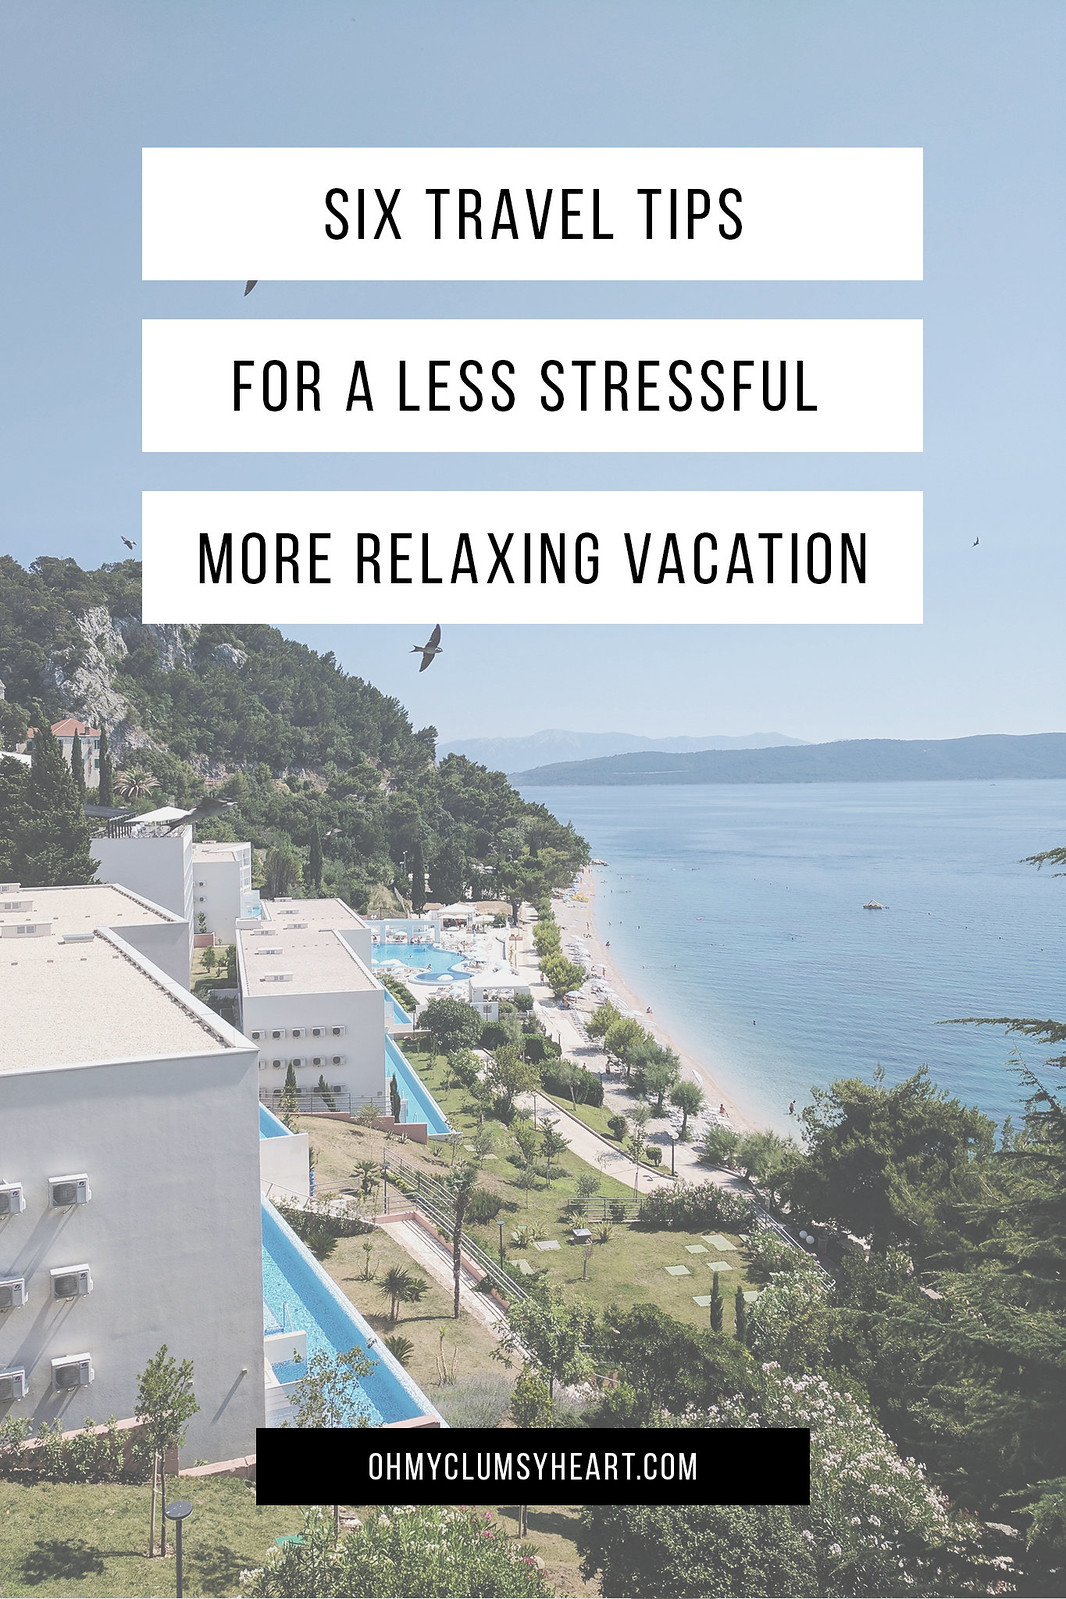 Tips for a Less Stressful Vacation